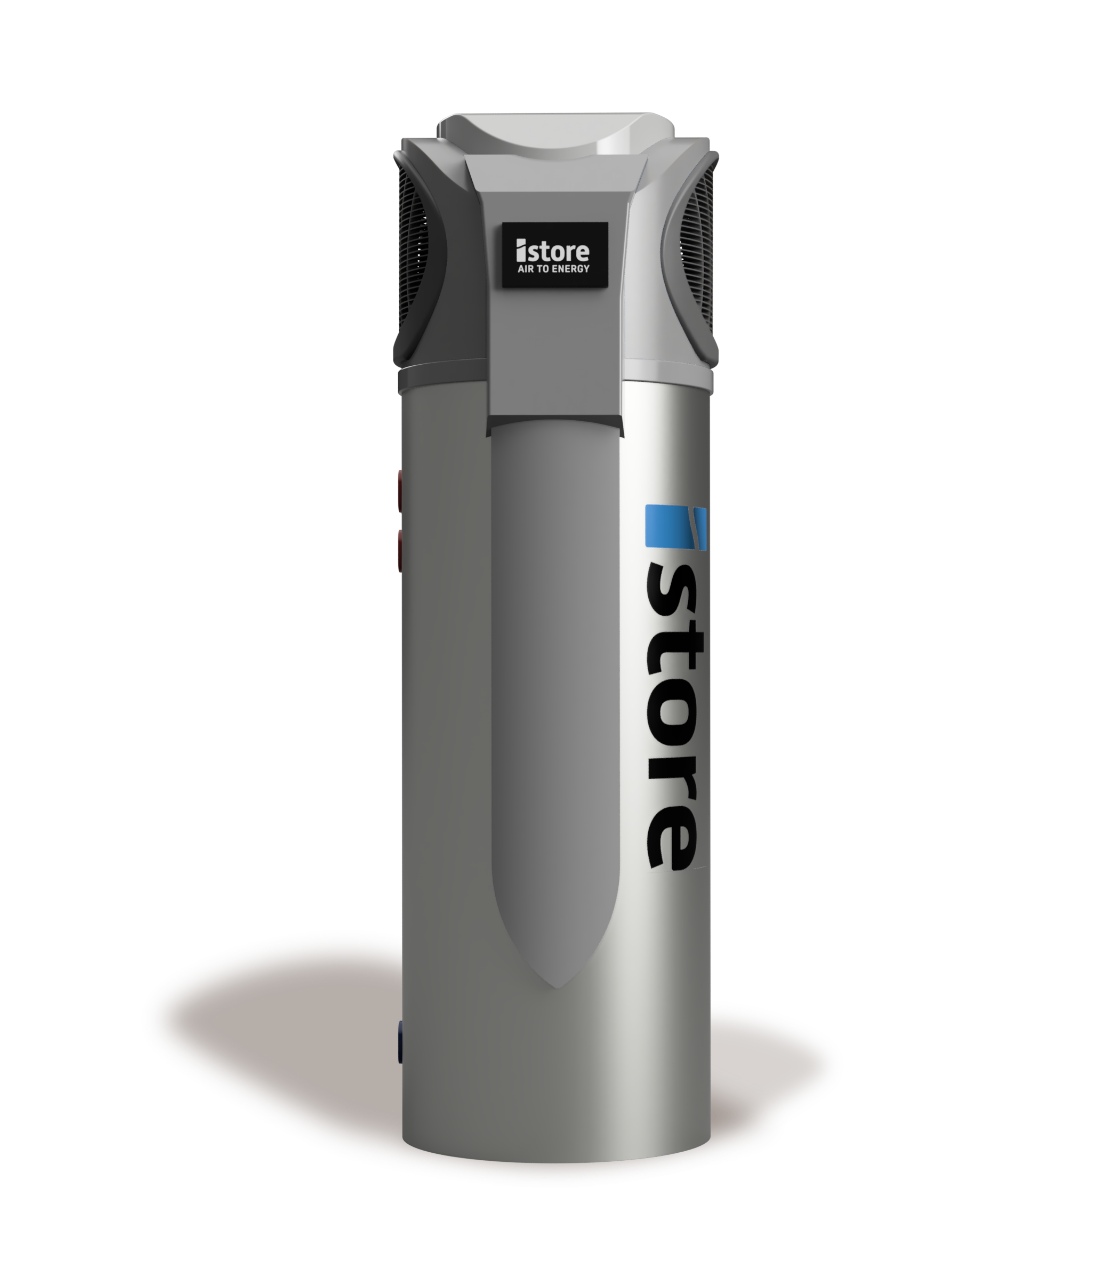 iStore Hot Water Review